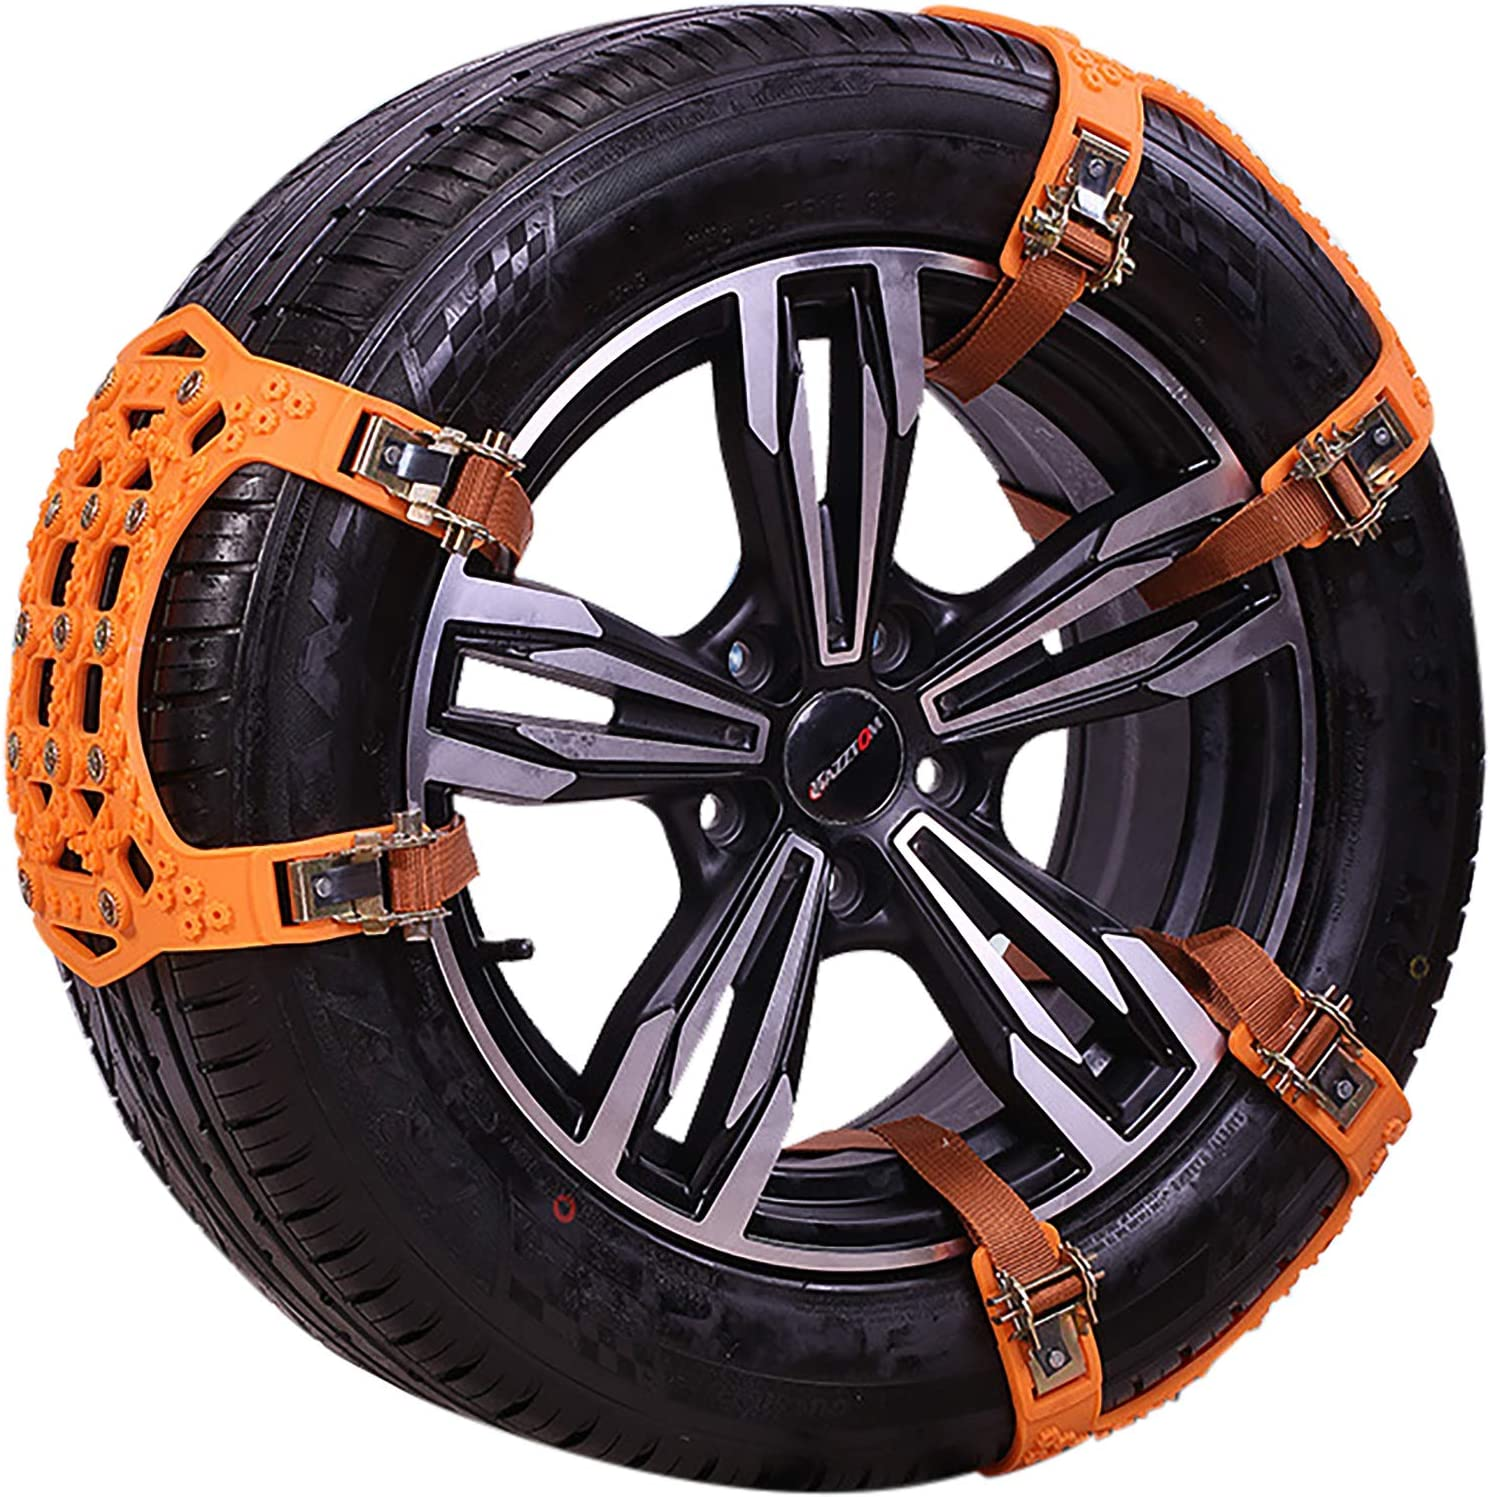 Fishines Columbus Mall 6 Pieces Car Snow Chains Non-Sl TPU Universal Emergency New sales